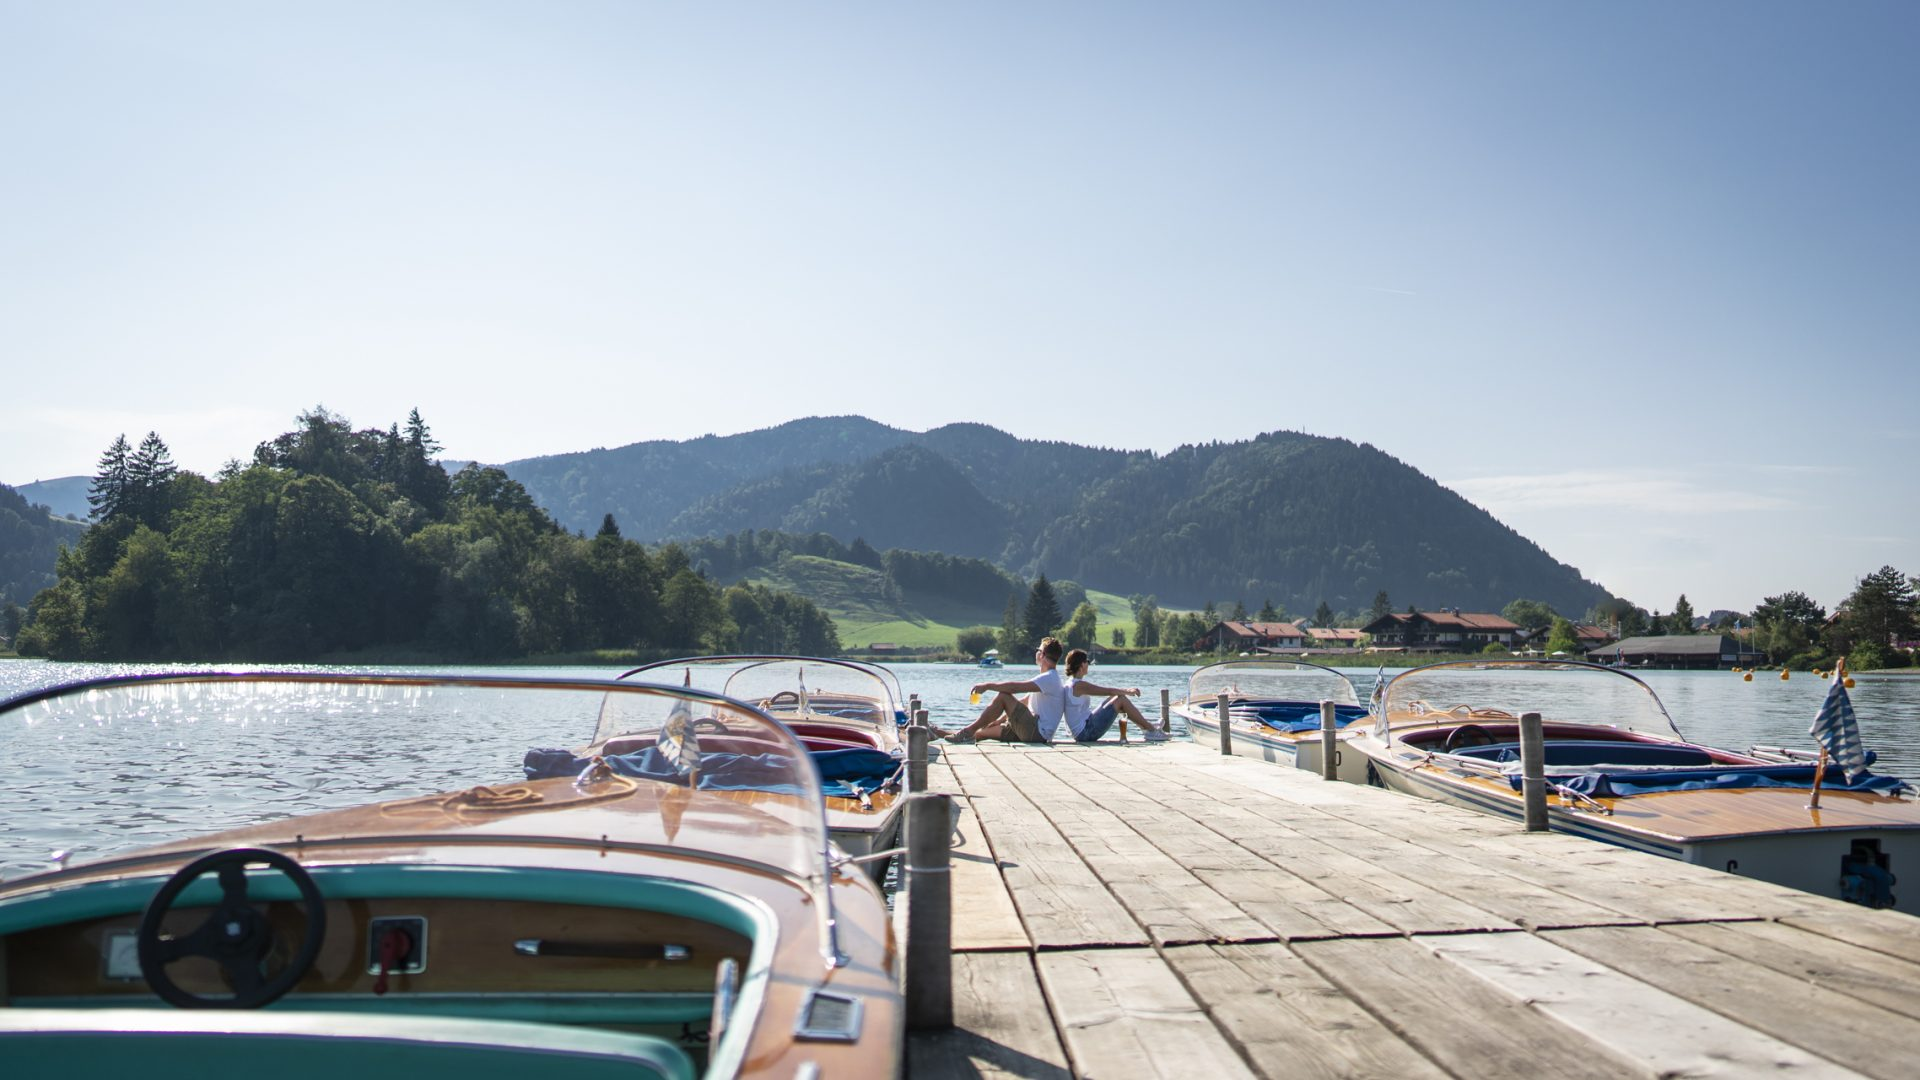 Chillen am Schliersee